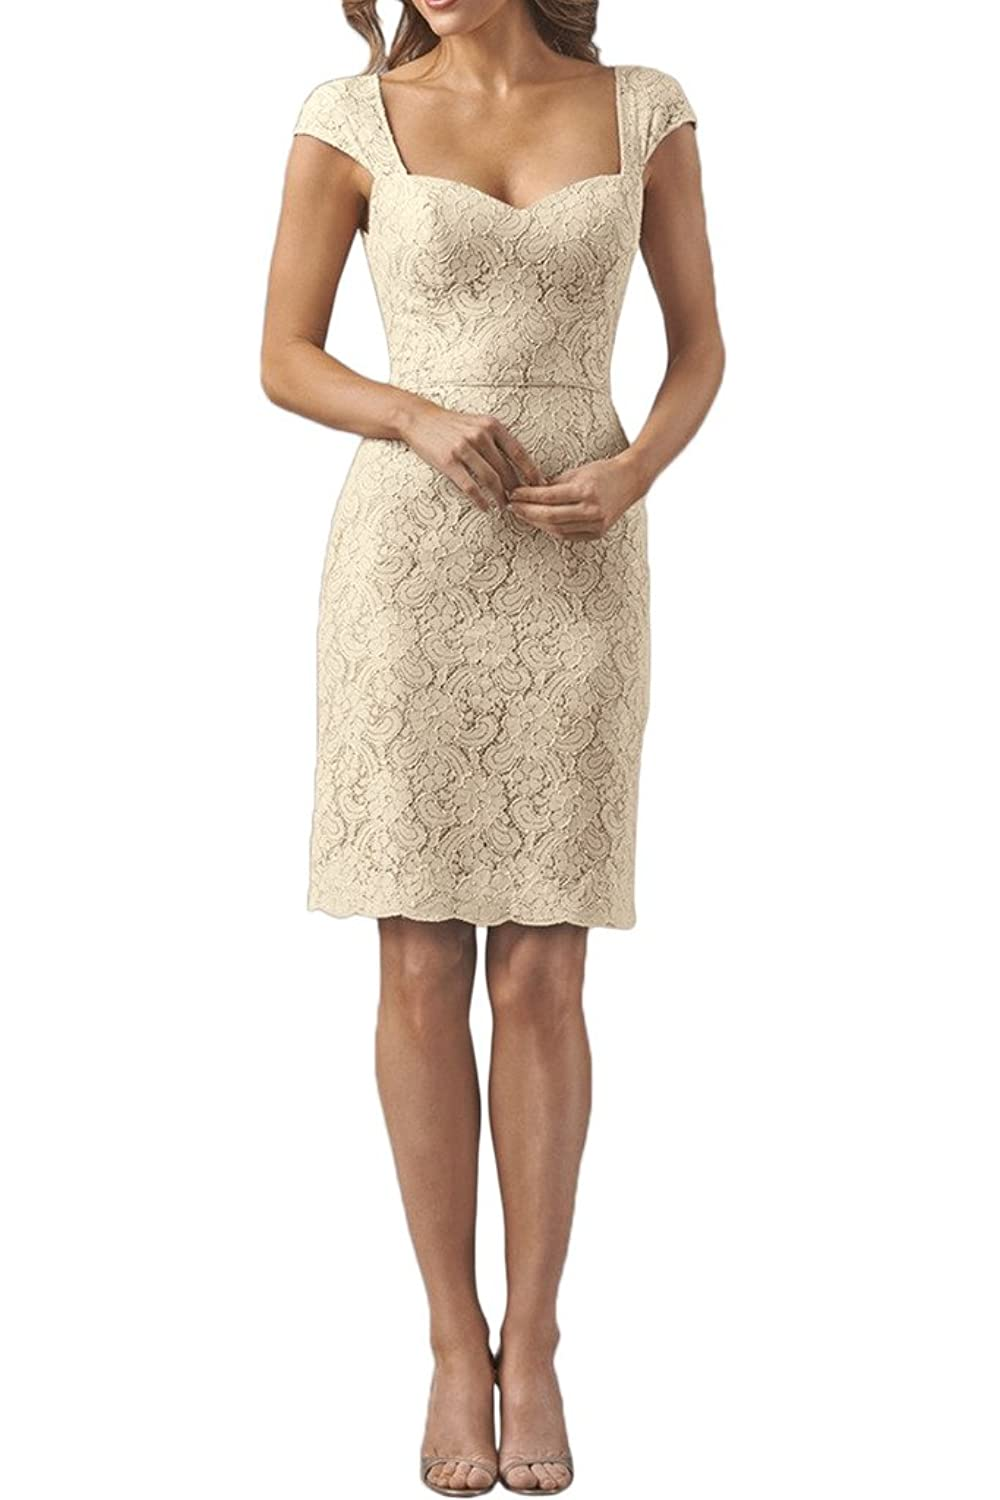 Gorgeous Bride Short Cap Sleeves Mother of the Bride Cocktail Dresses Lace